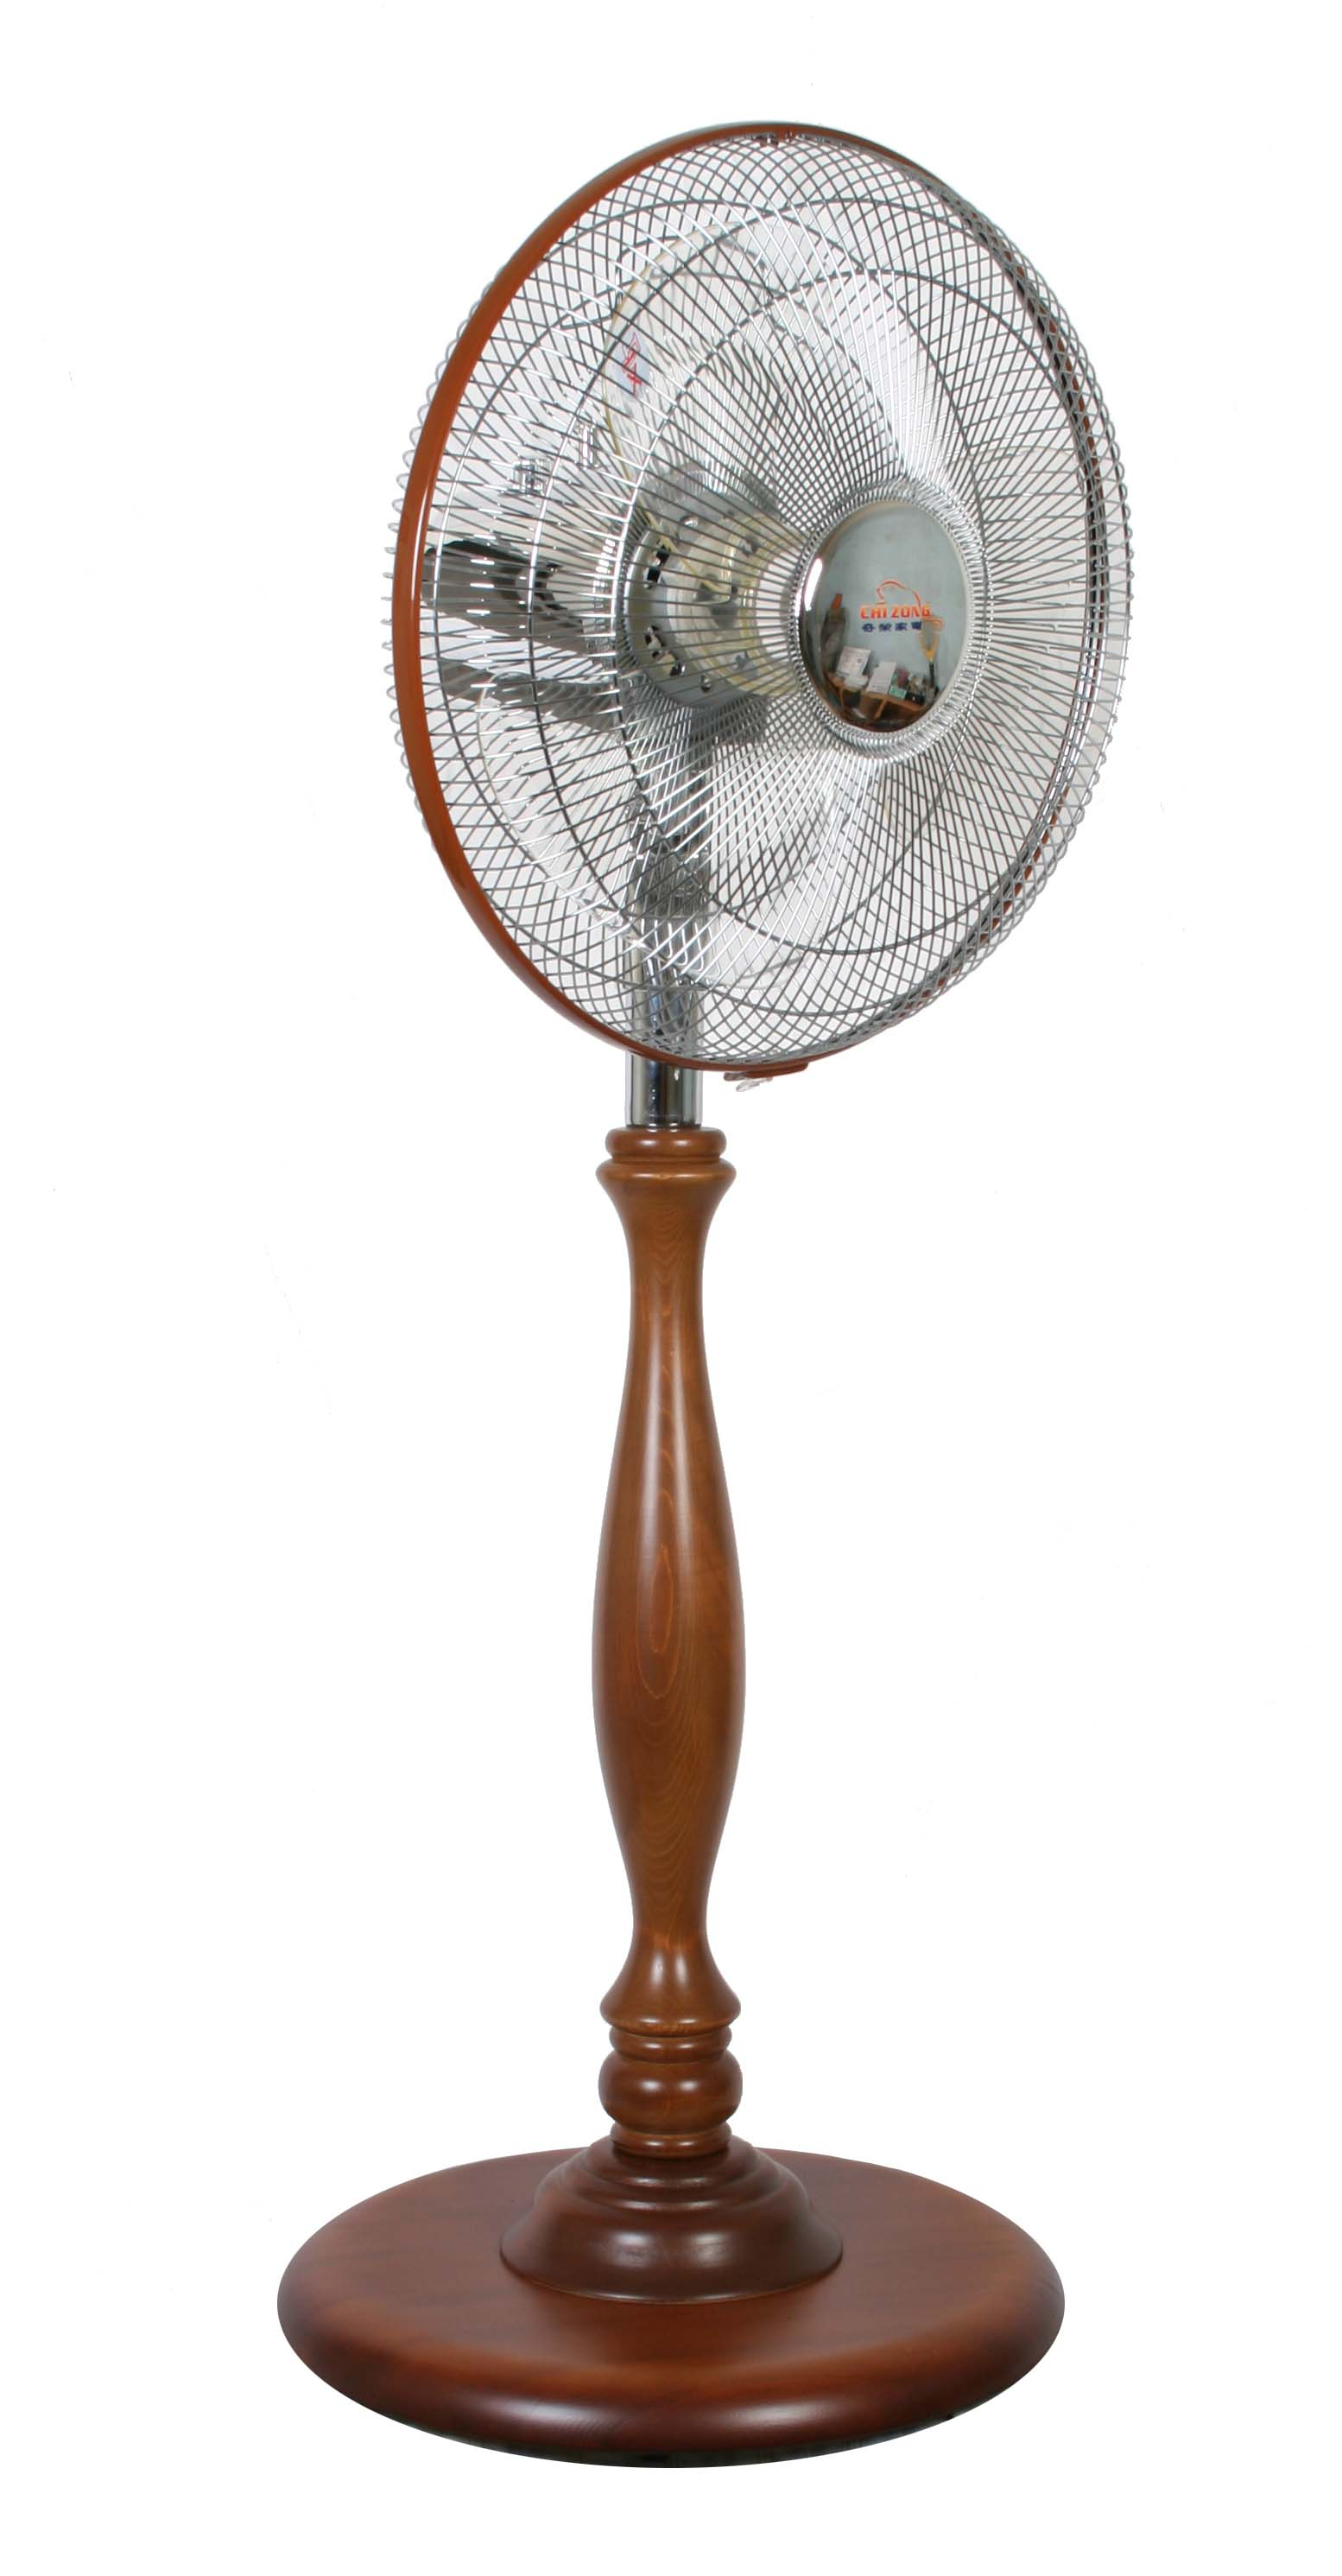 wooden floor fan, wooden floor fan suppliers and manufacturers at